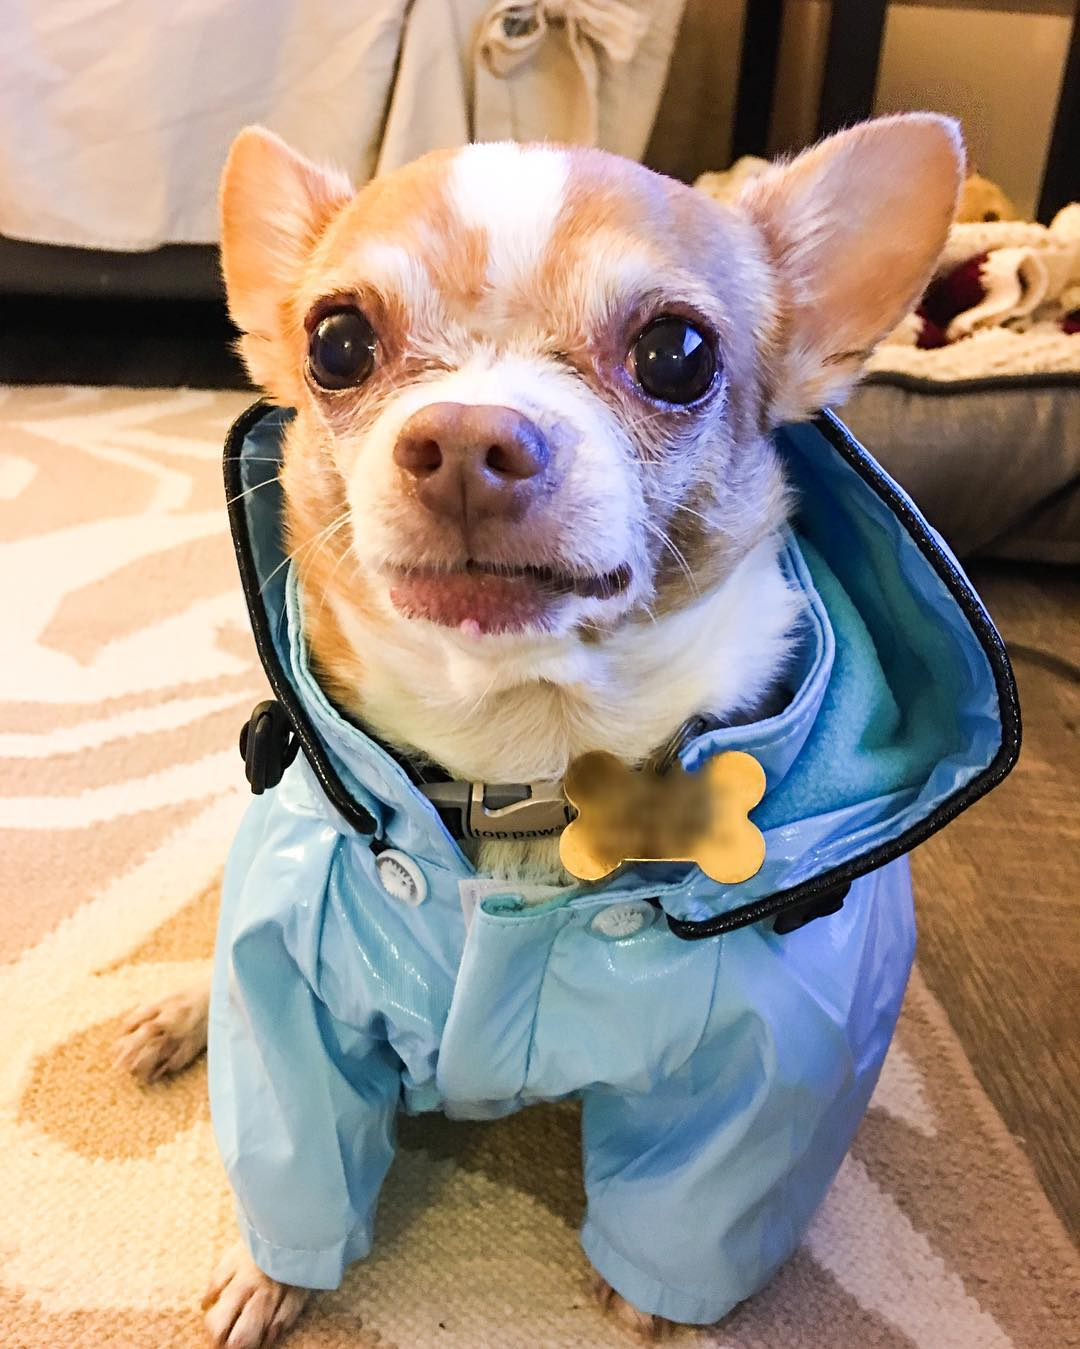 "<div class=""meta image-caption""><div class=""origin-logo origin-image none""><span>none</span></div><span class=""caption-text"">A dog wears a little raincoat in this undated image. (Photo submitted to KGO-TV by @portiaandpumapups/Instagram)</span></div>"